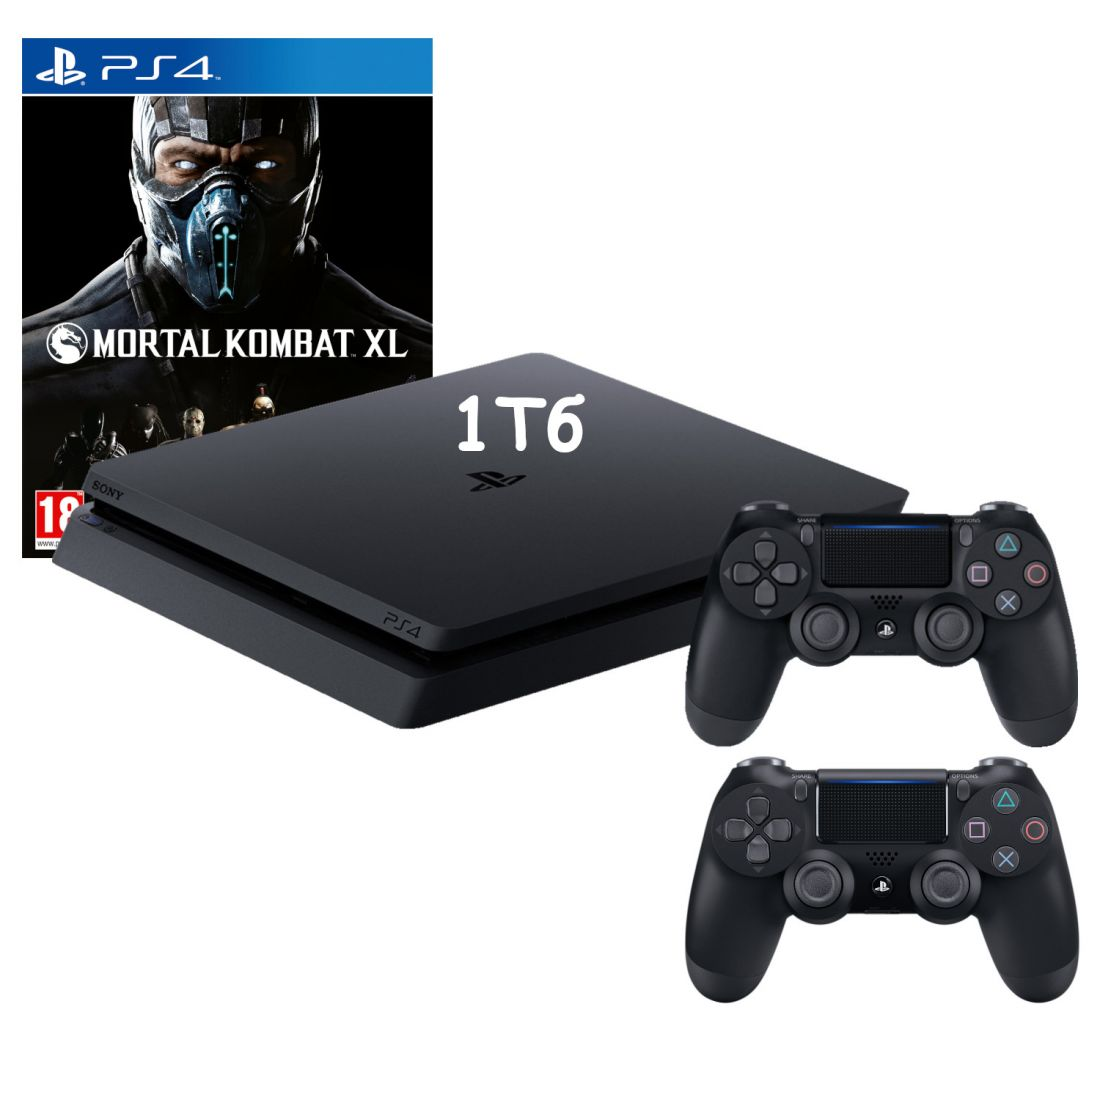 Sony PlayStation 4 Slim 1 Тб + Доп. джойстик и игра Mortal Kombat XL